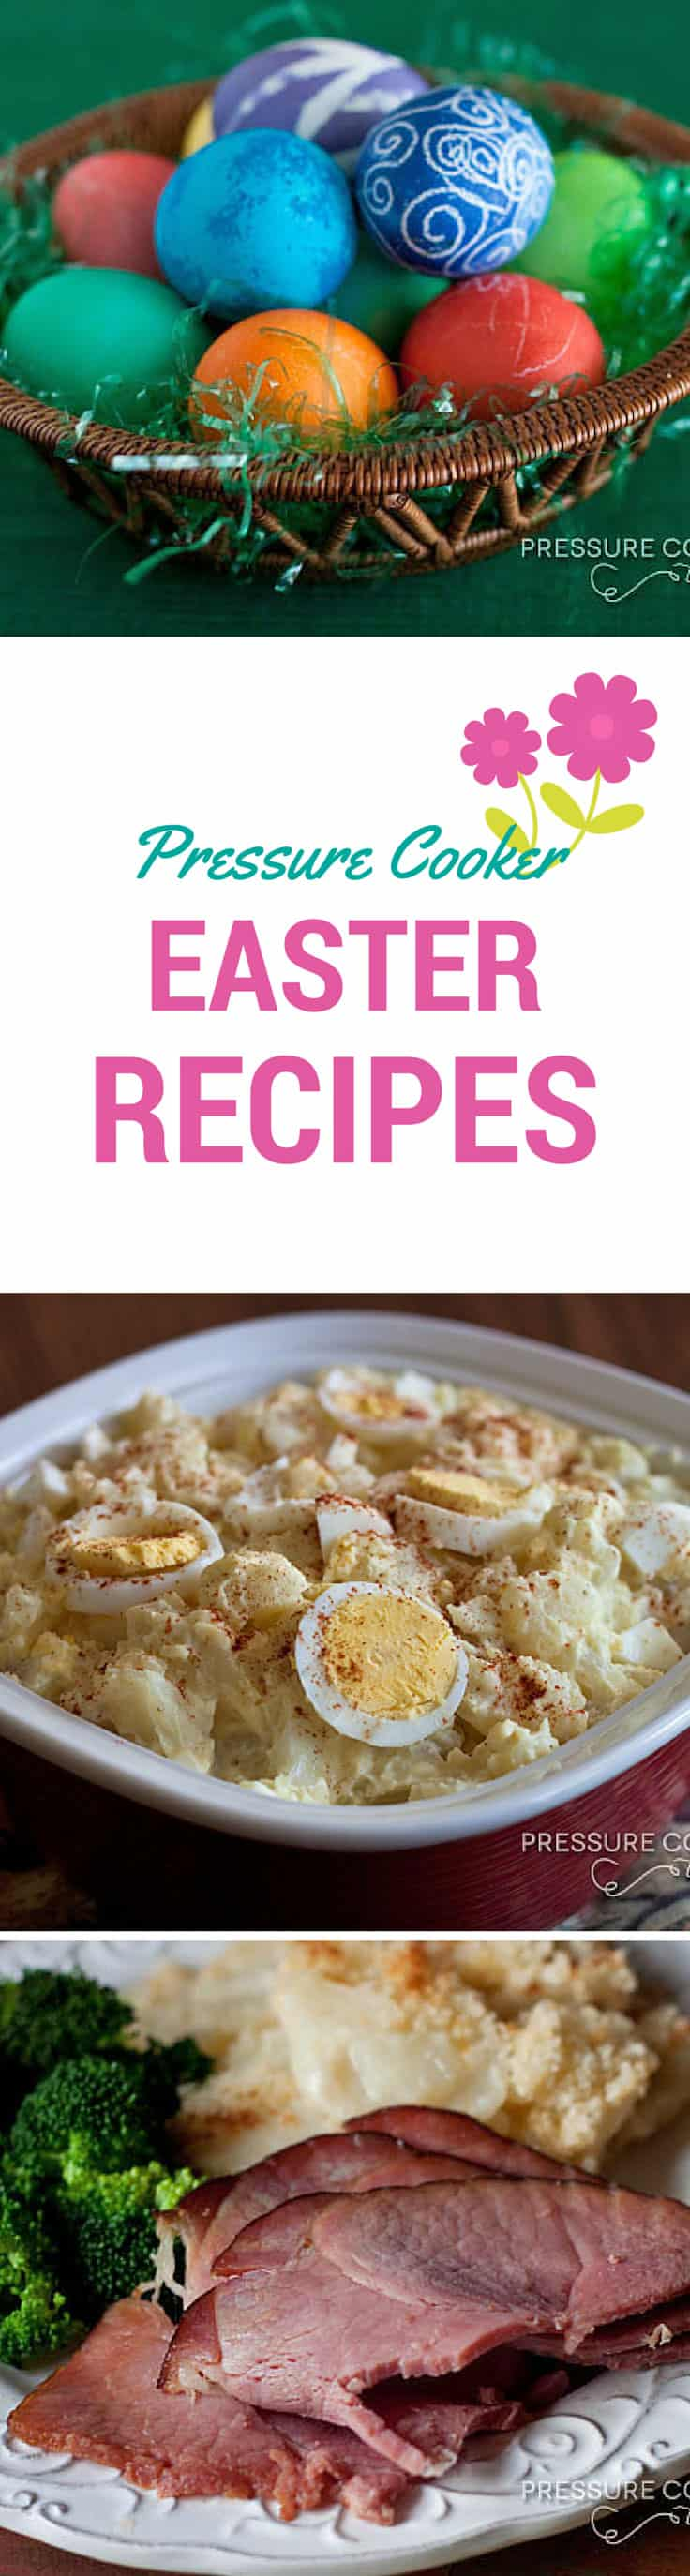 Easter-Pressure-Cooker-Recipes-Collage